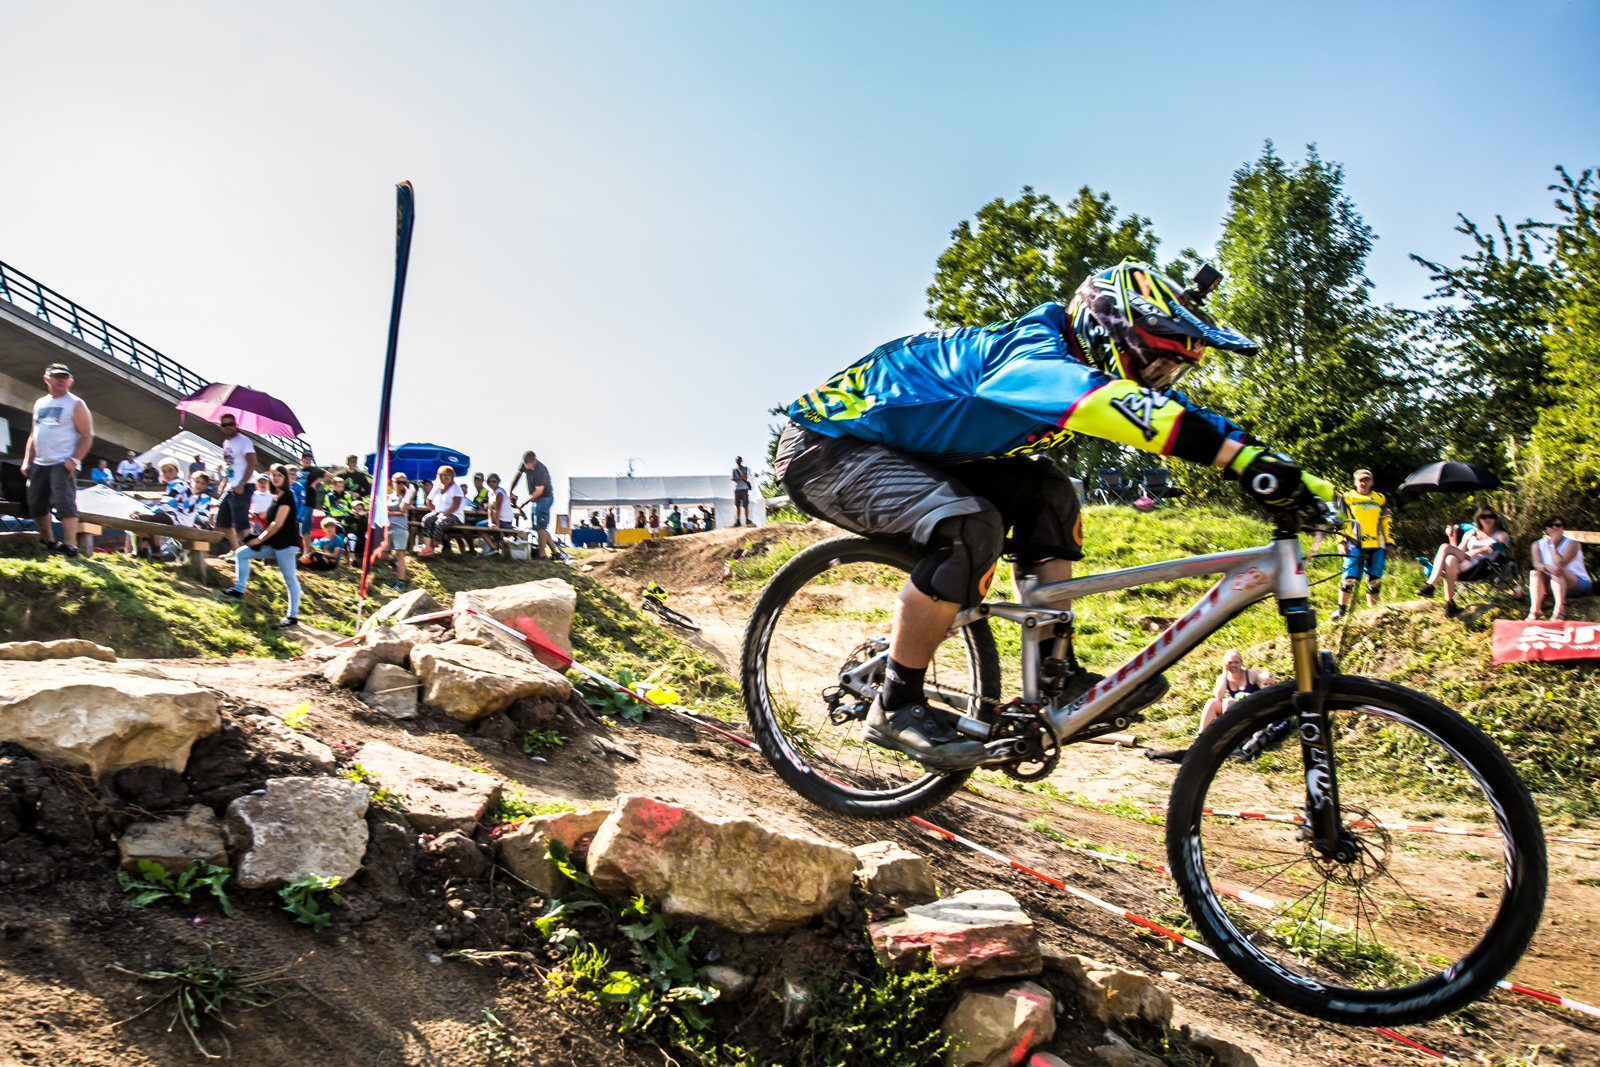 Jonas Gauss takes his first victory 2 days after the world championship race in Val di Sole on his local track - Photographer J rgen Albrecht